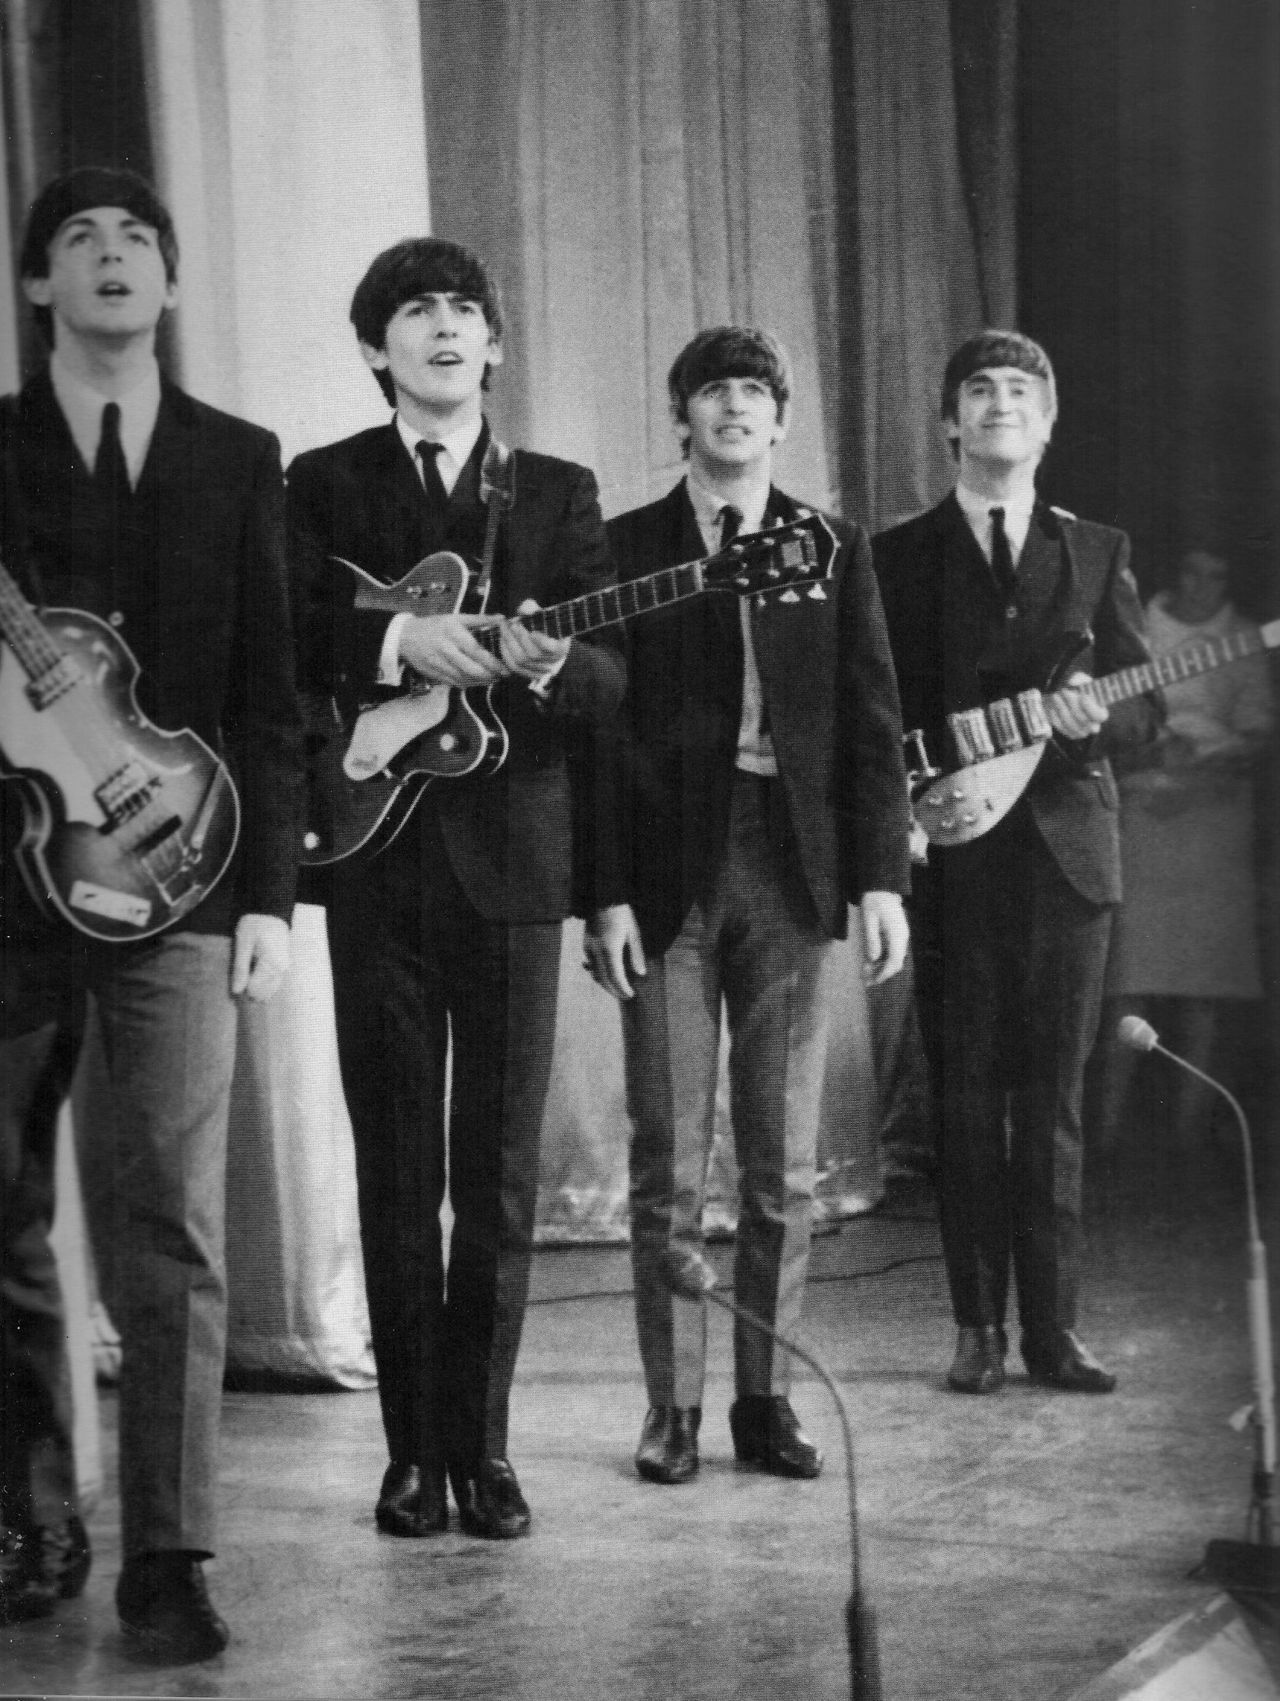 The Beatles - Royal Command Performance at the Prince of Whales Theatre (October 1963)